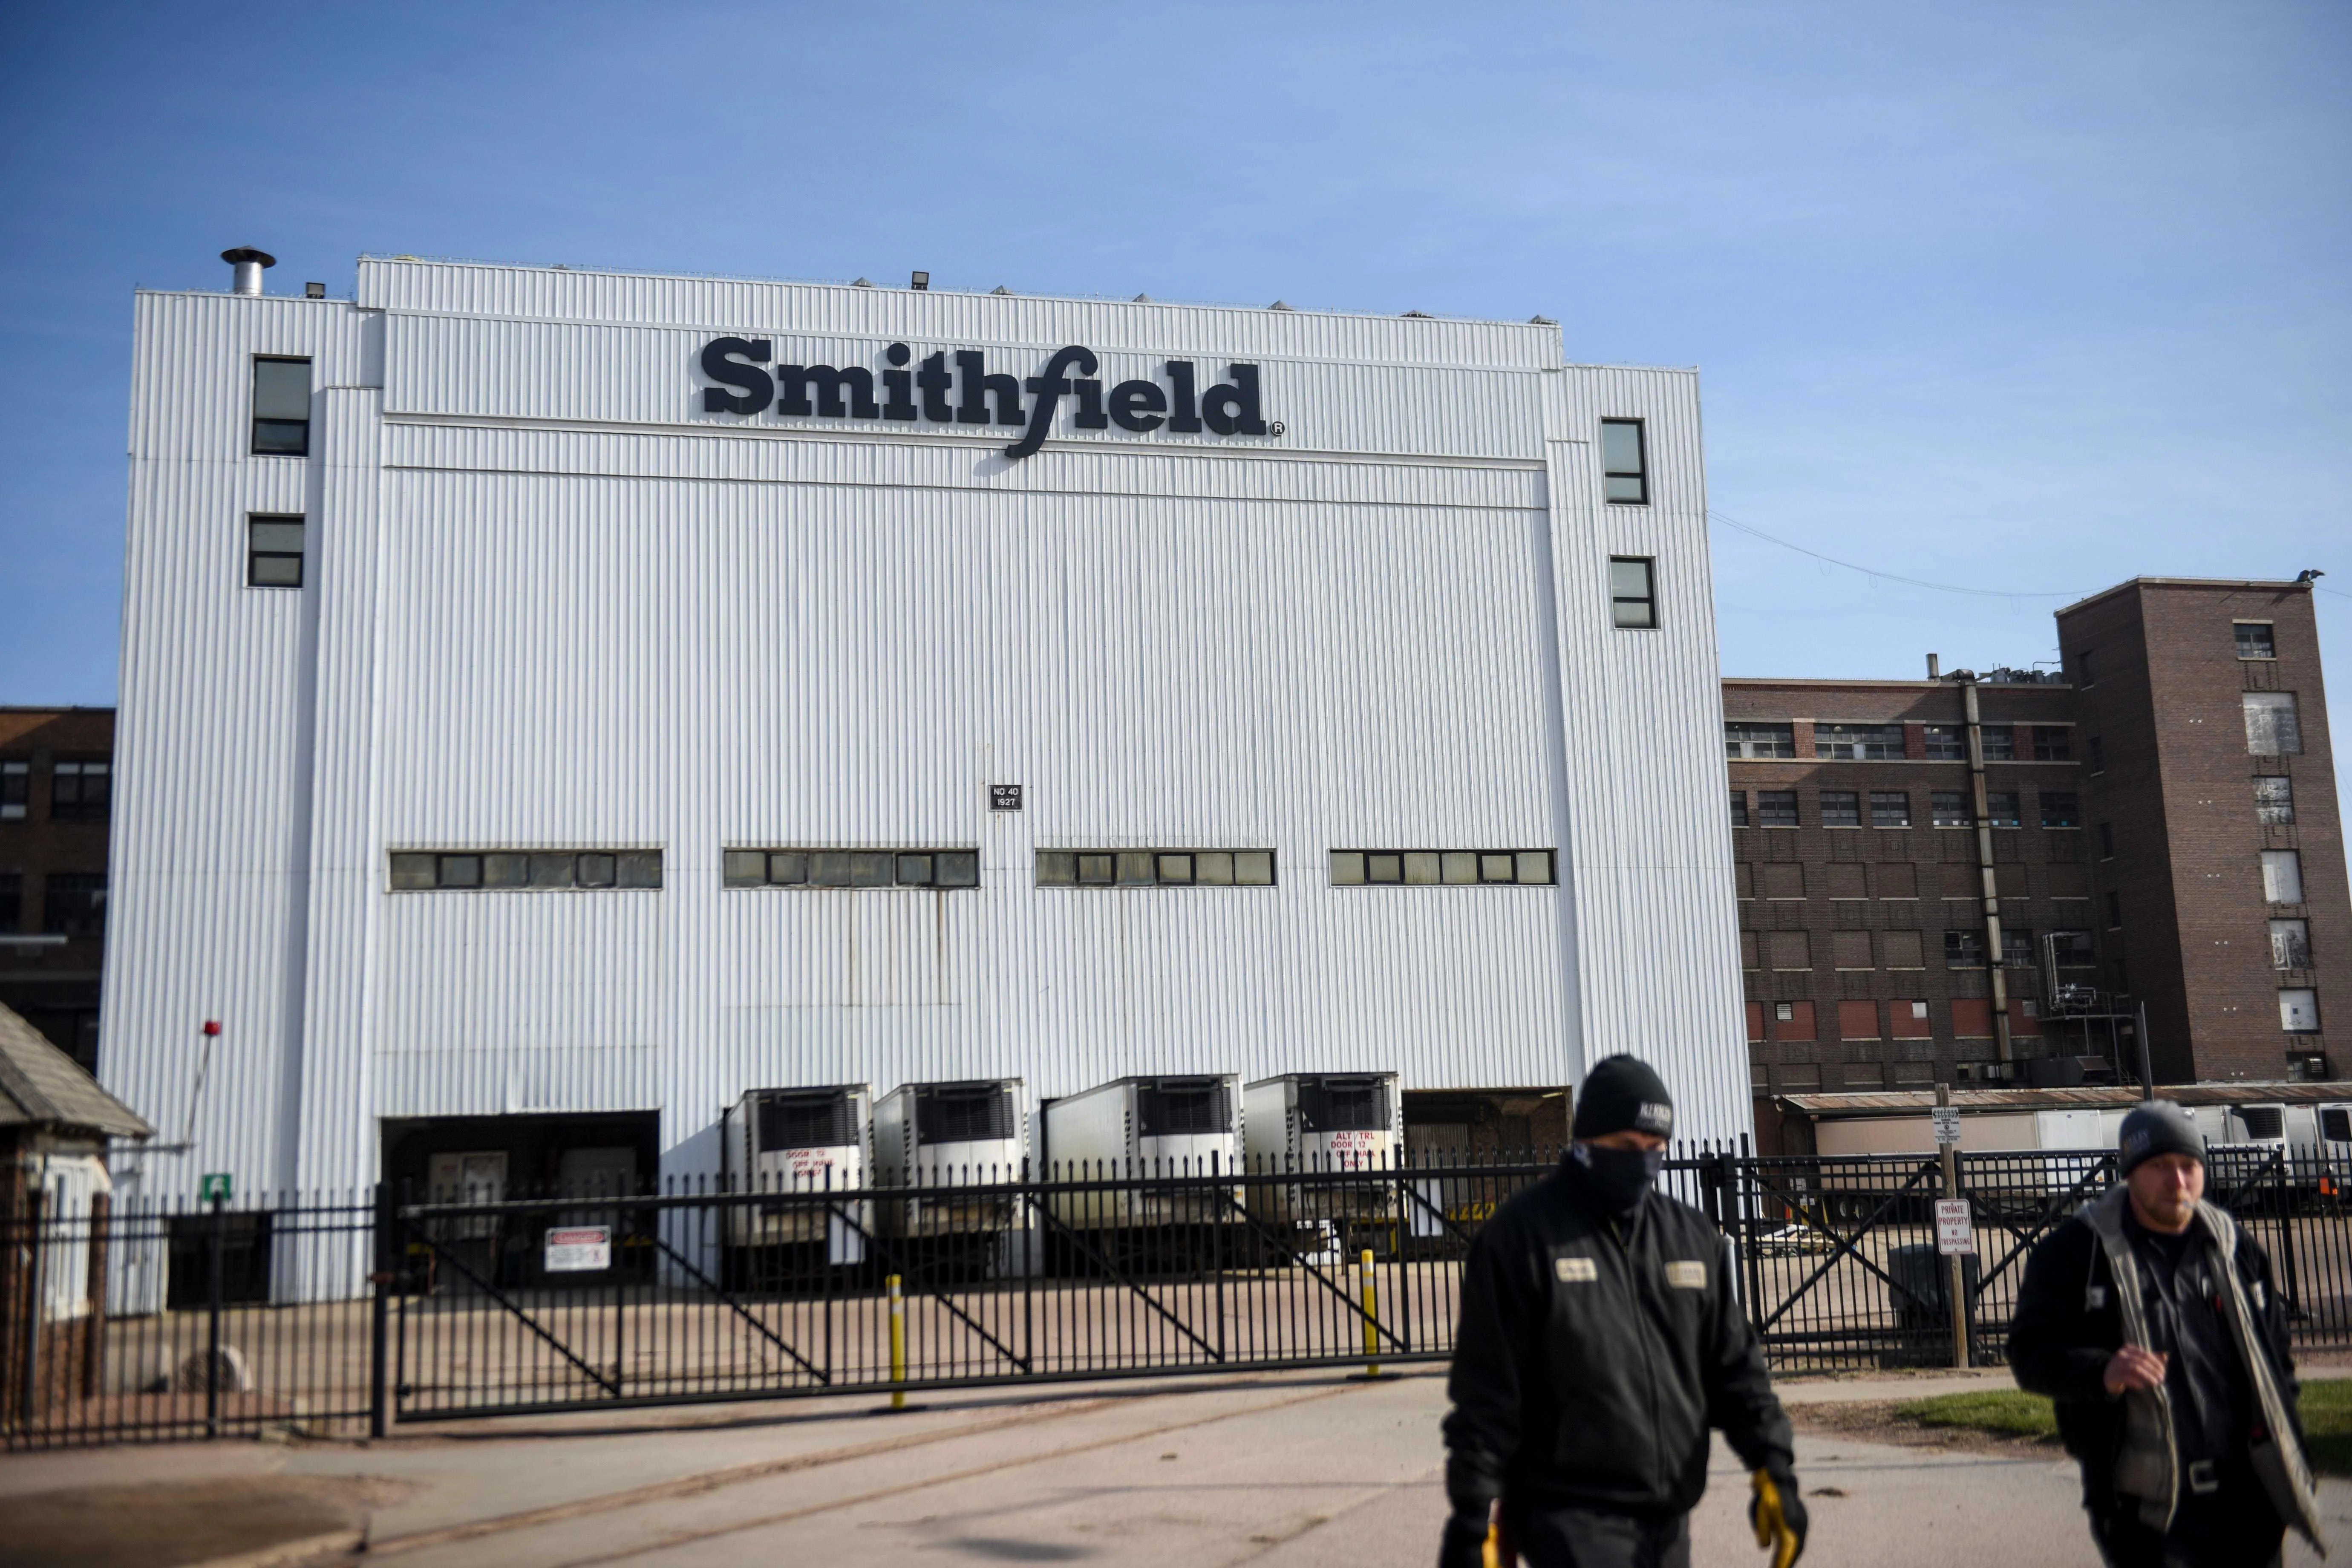 Smithfield Foods of Sioux Falls, S.D., was once the nation's largest hot spot for COVID-19.